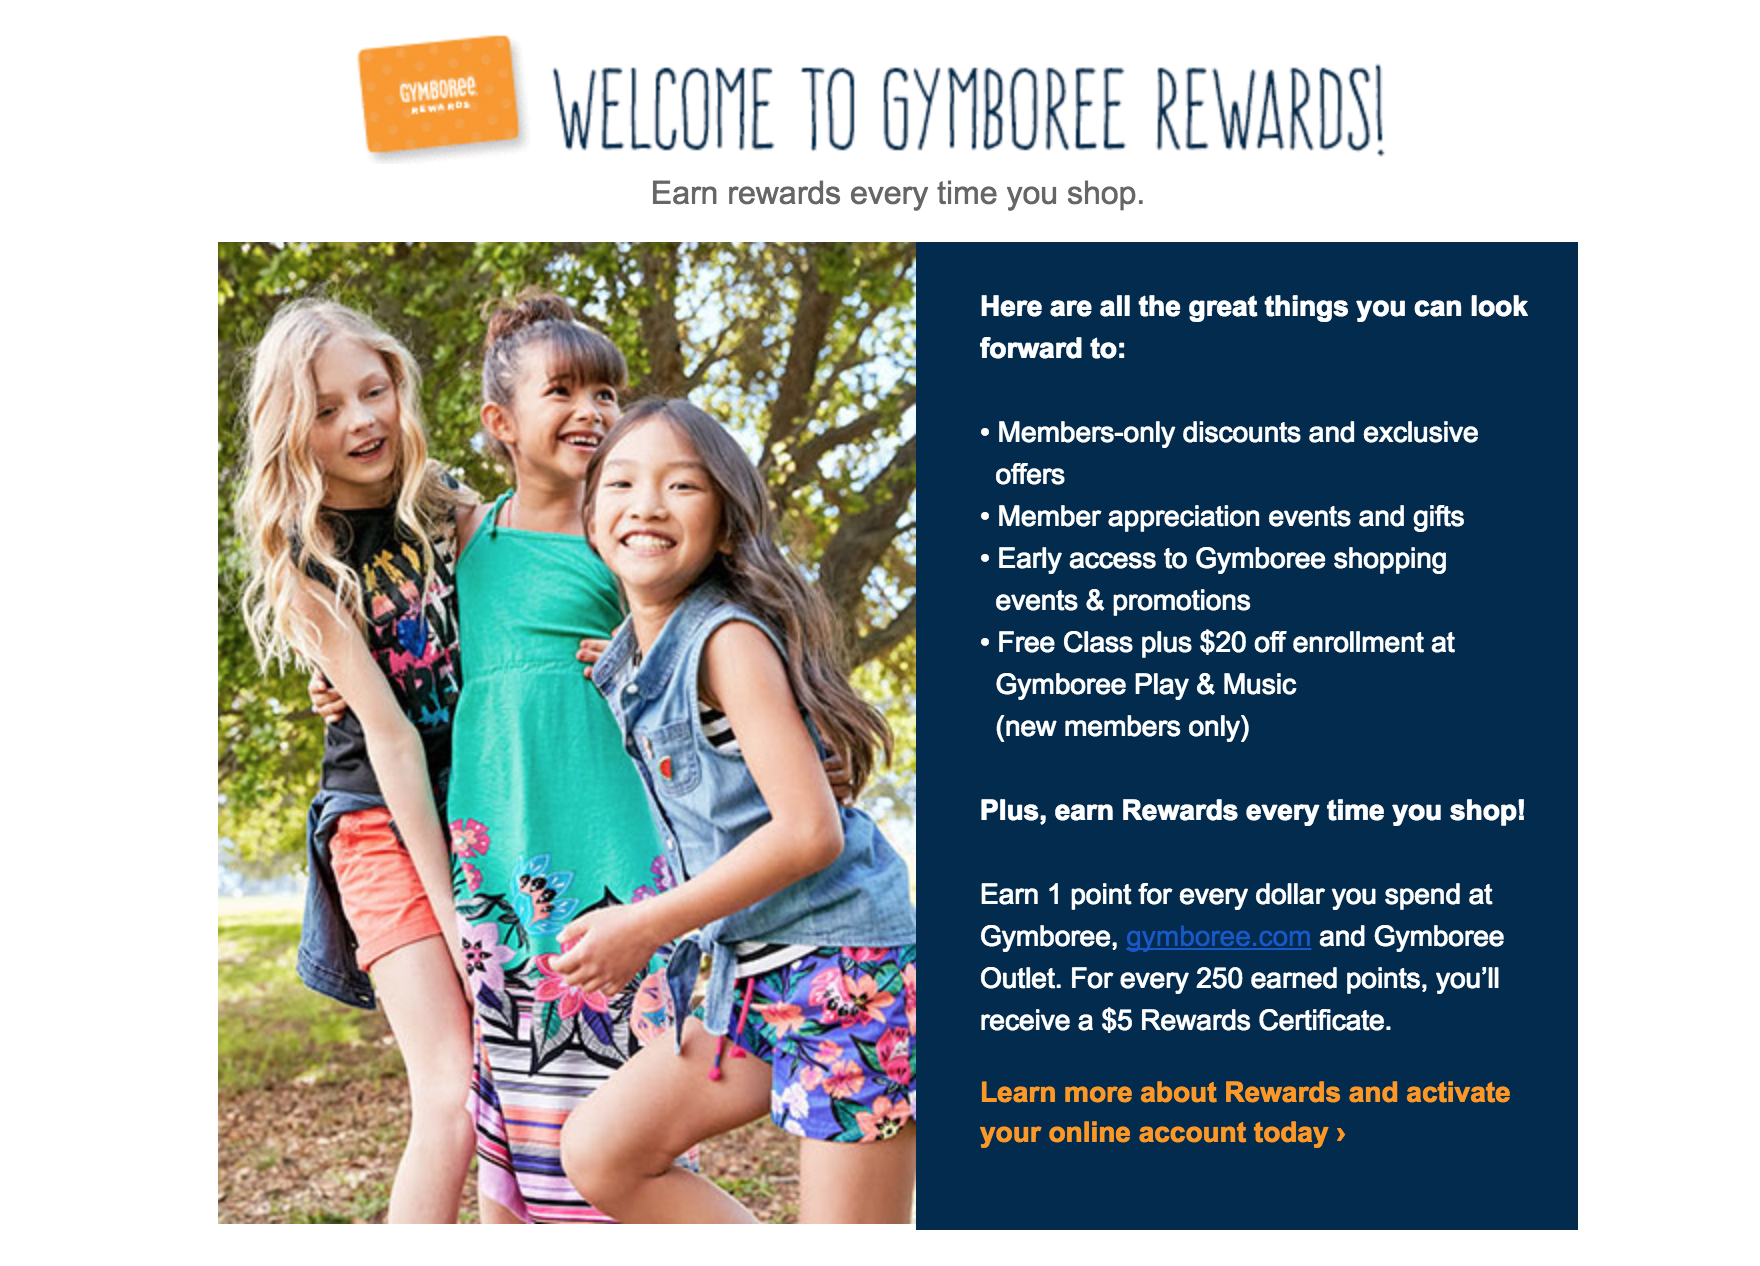 Gymboree Rewards Welcome Incentive Email